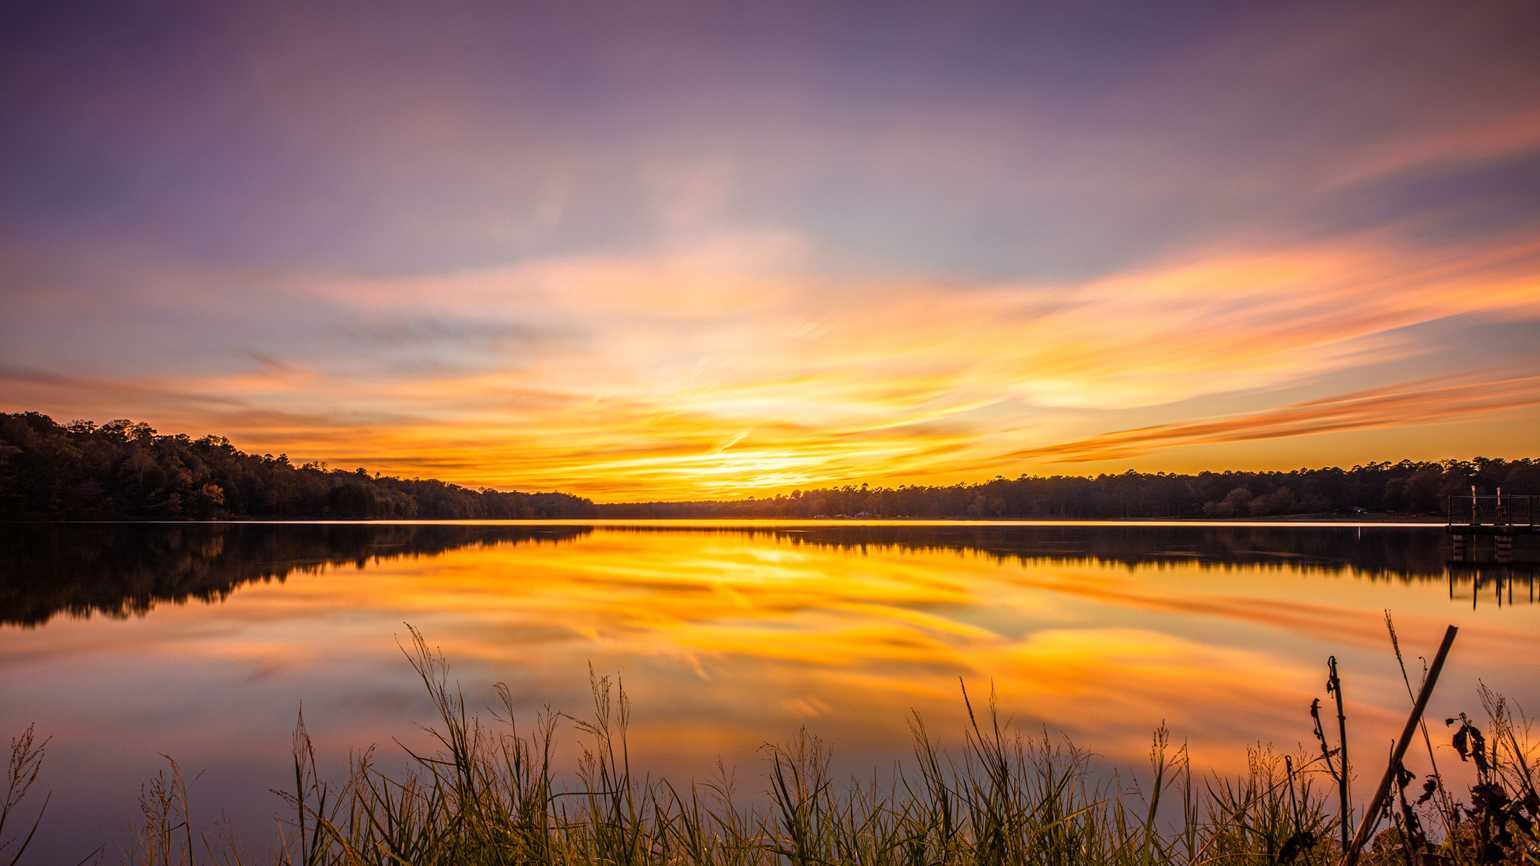 Sunset by a lake; Getty Images